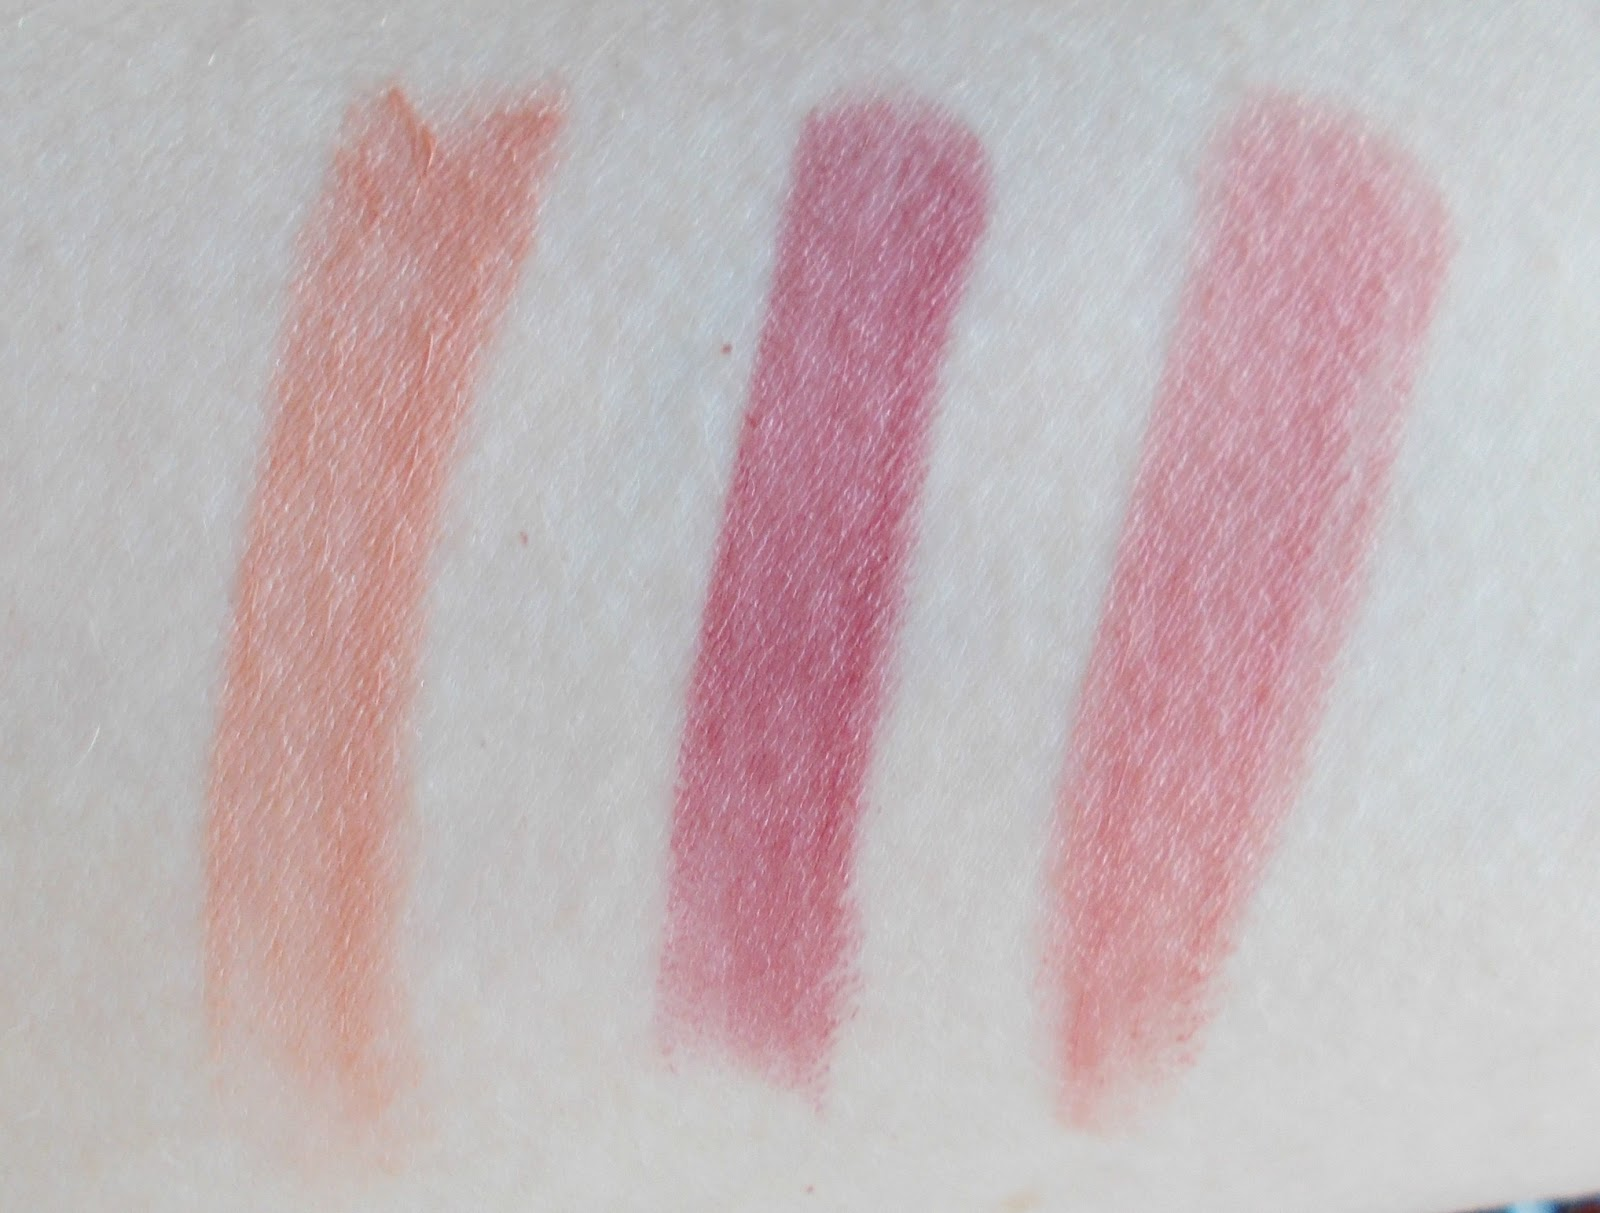 Smashbox Light it Up lipstick and mattifier set be legendary famous fig primrose swatches